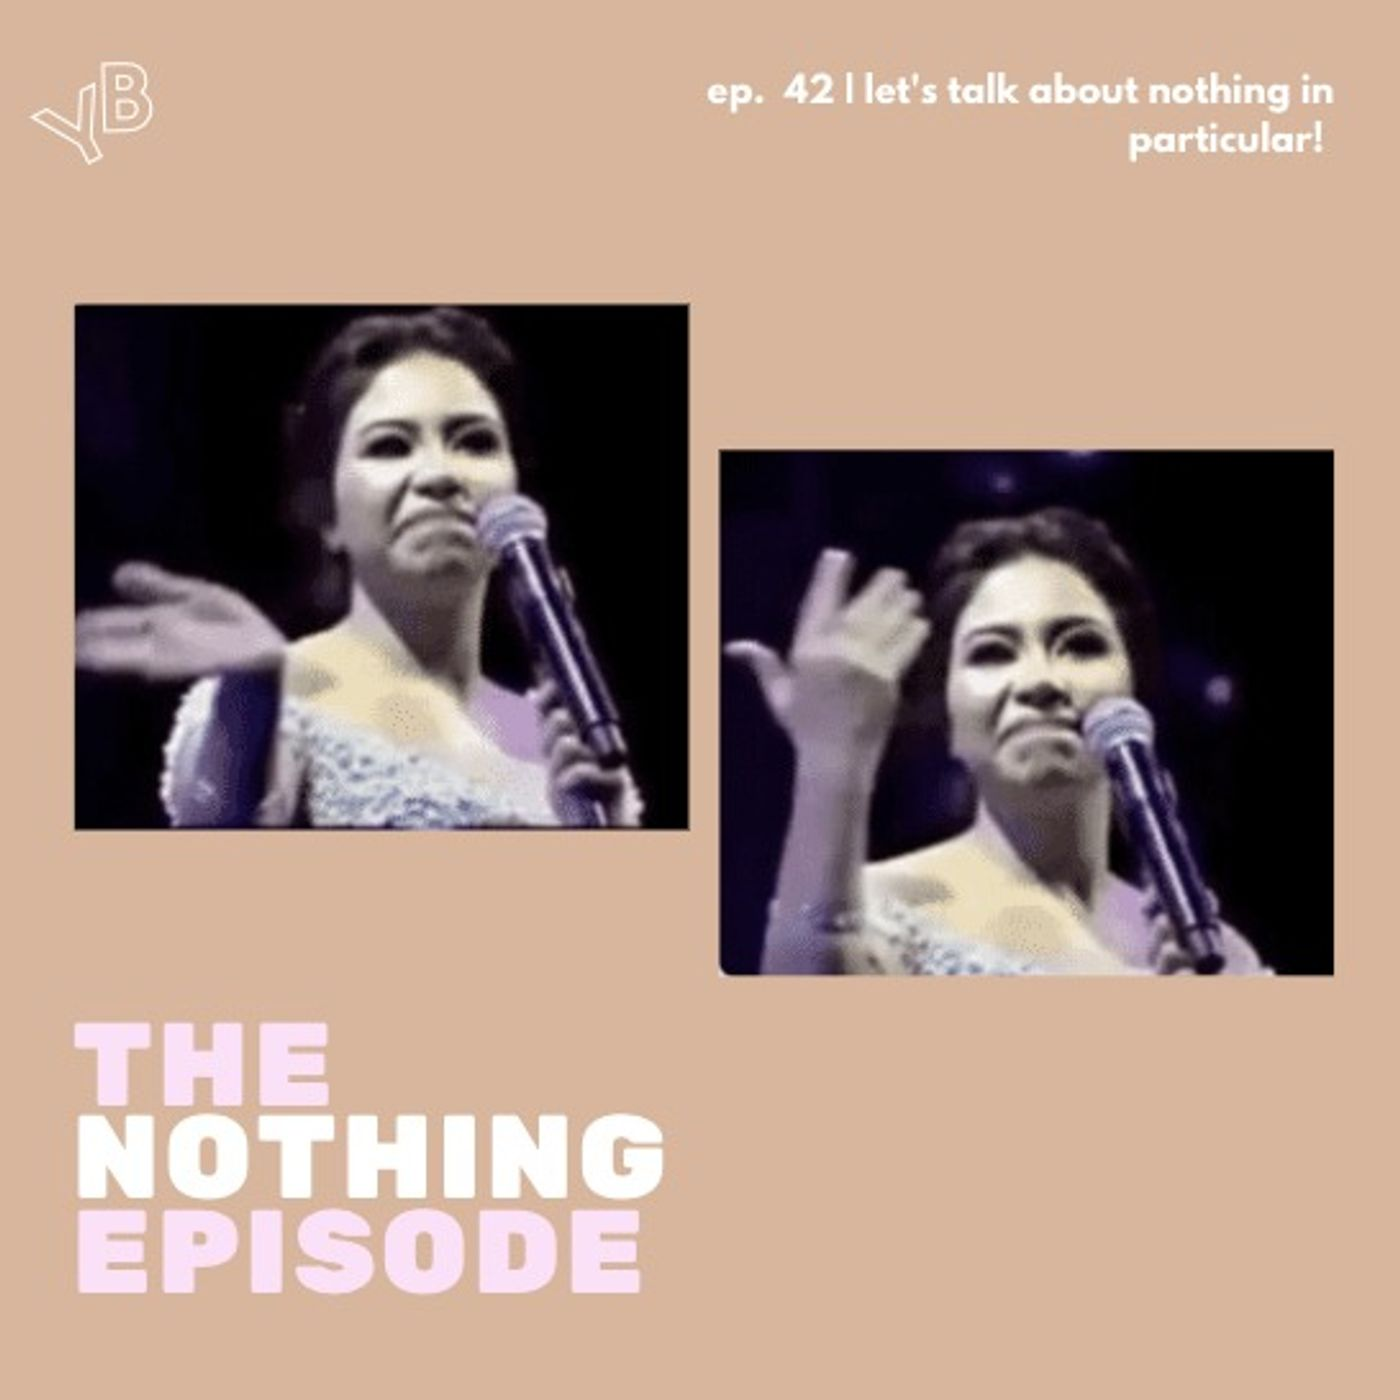 42 | Let's talk about nothing in particular!